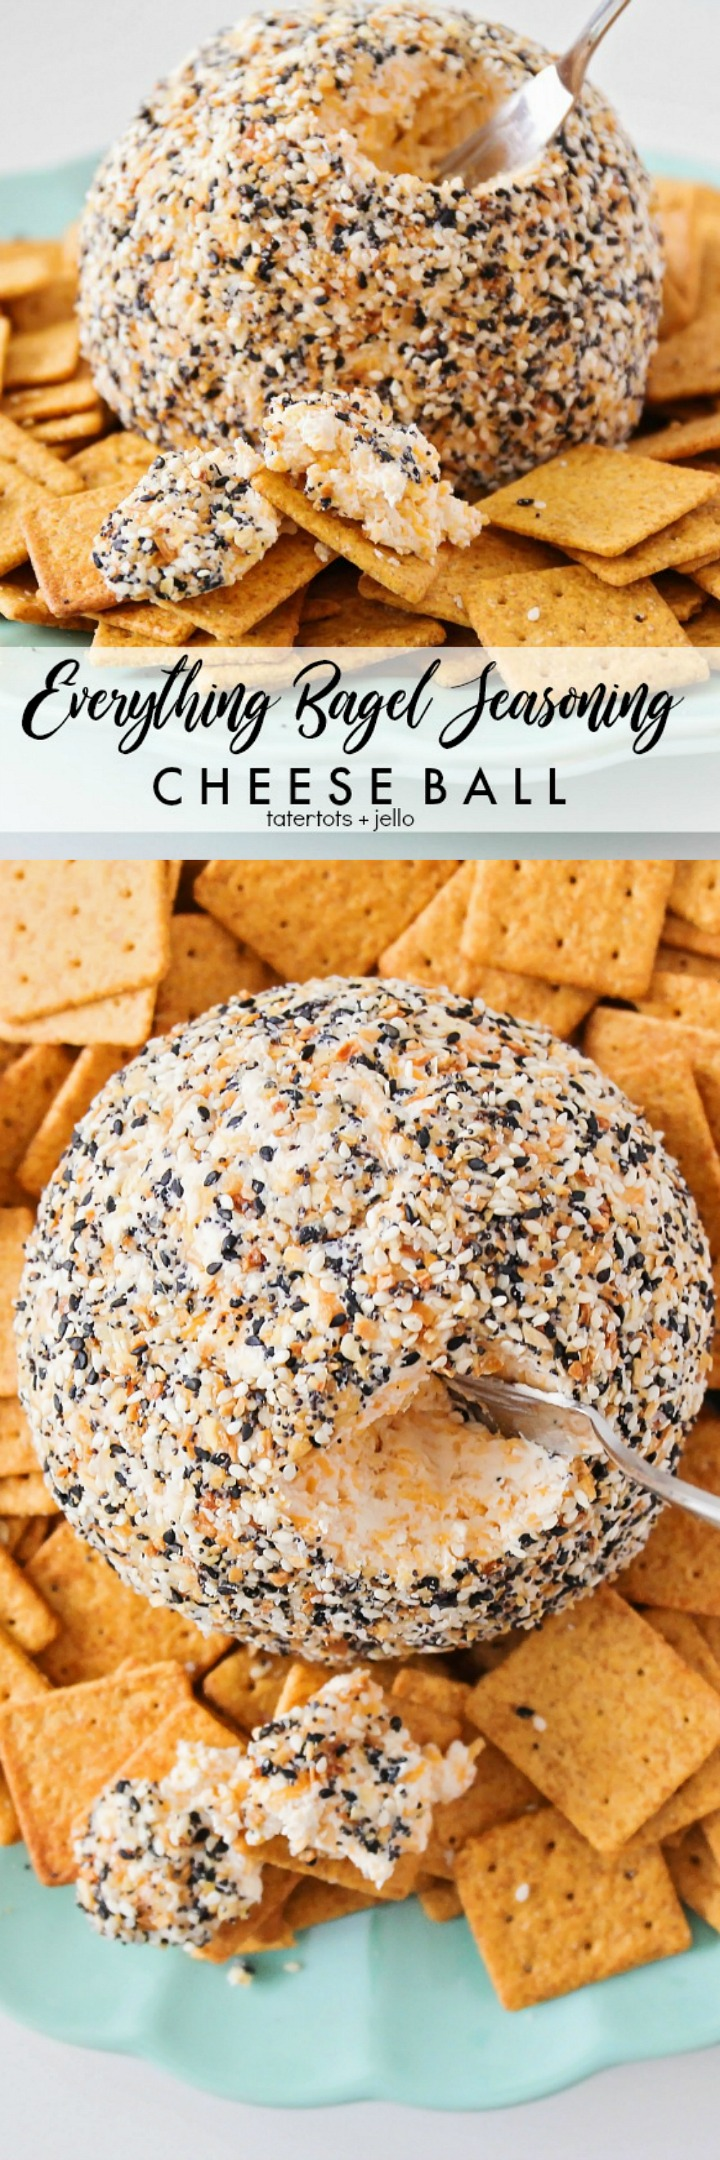 everything bagel seasoning cheese ball - soft cheese inside, crunchy outside. The perfect holiday appetizer and so easy to make! #sponsored @walmart #WalmartHolidayReady